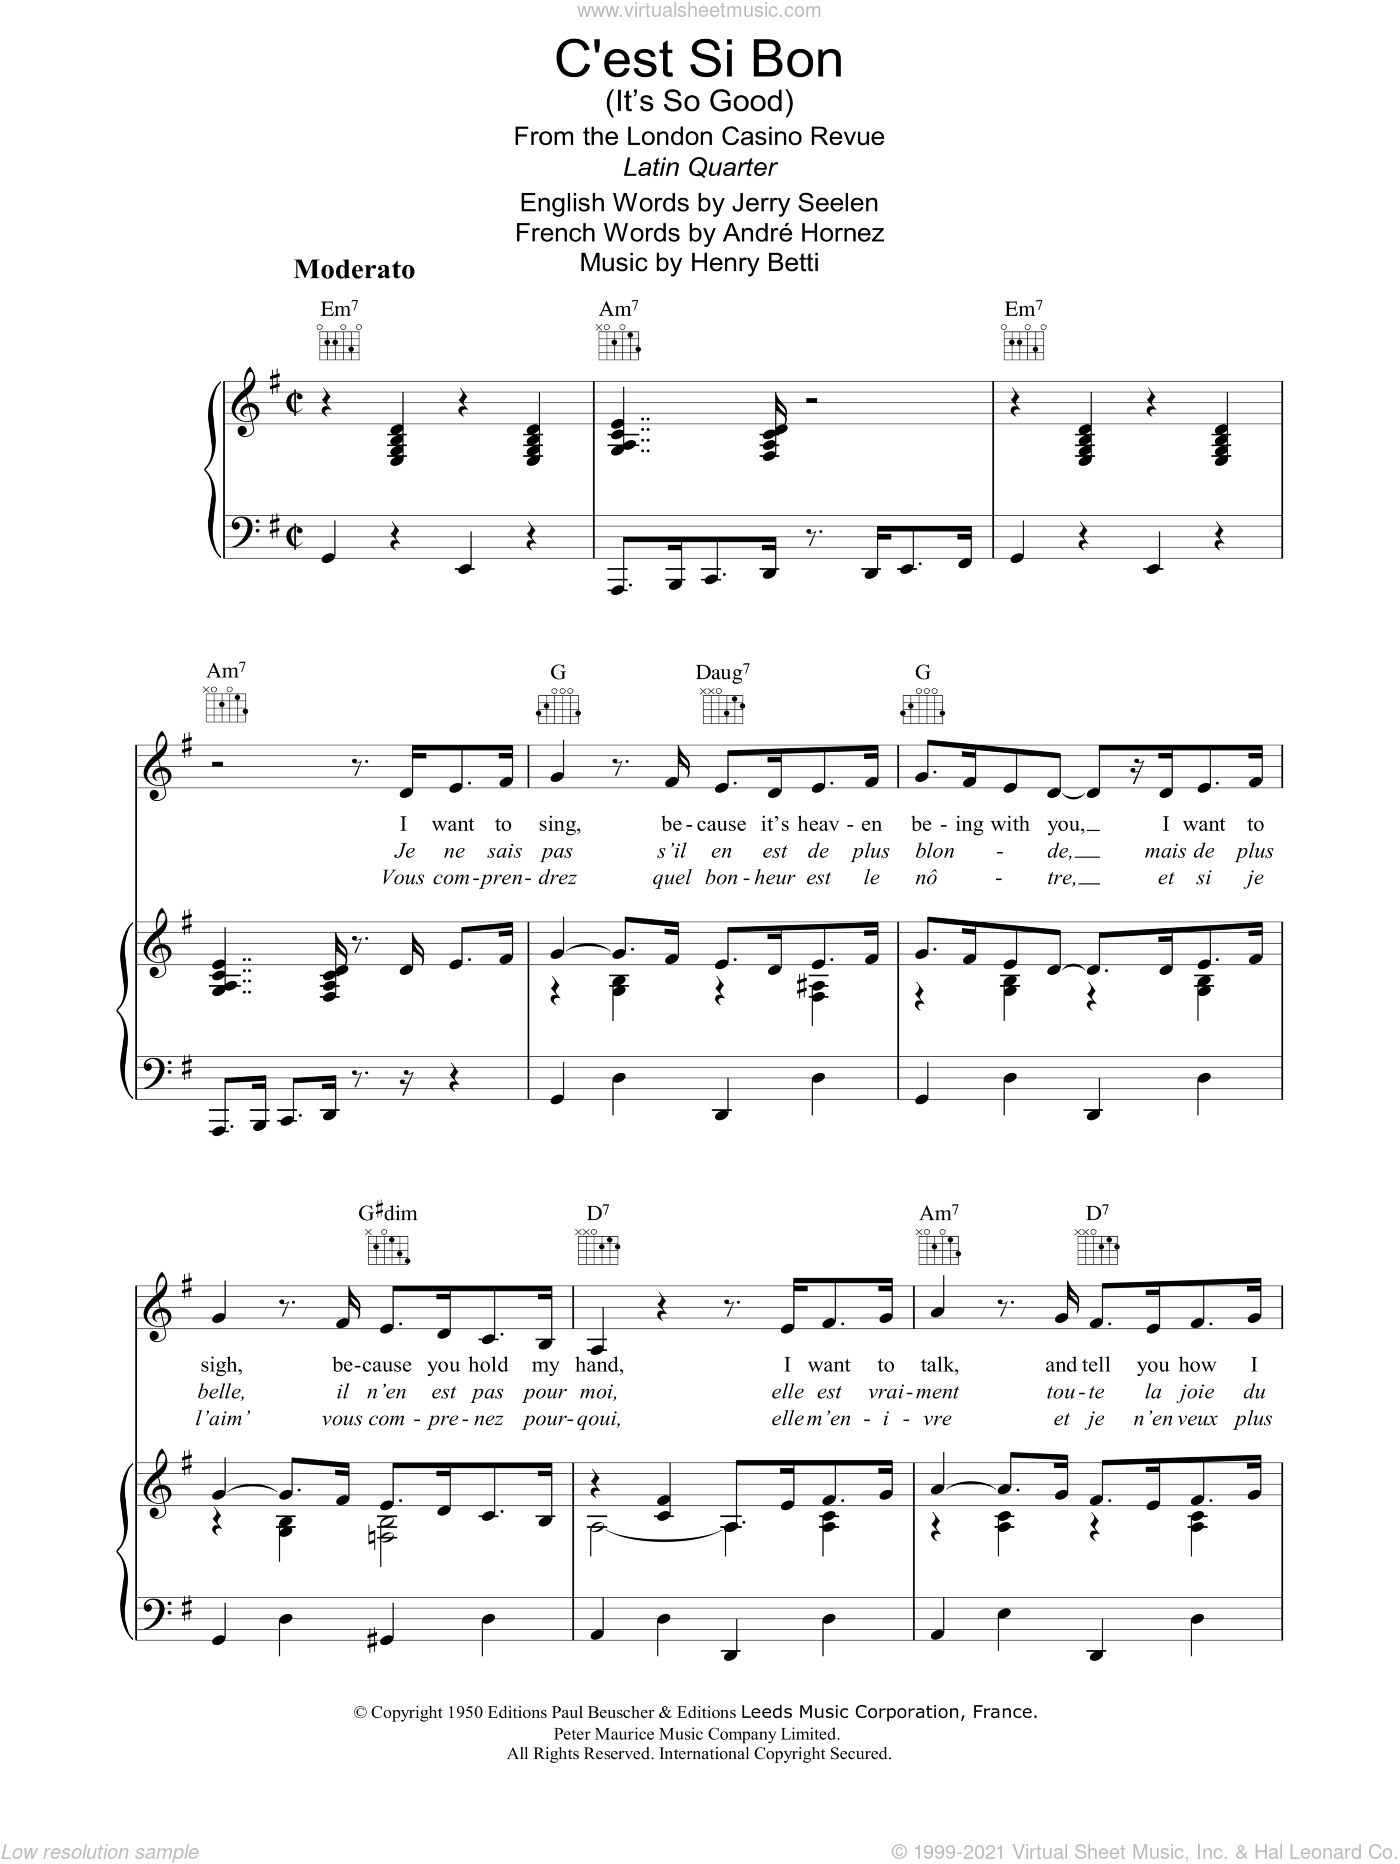 C'est Si Bon sheet music for voice, piano or guitar by Jerry Seelen